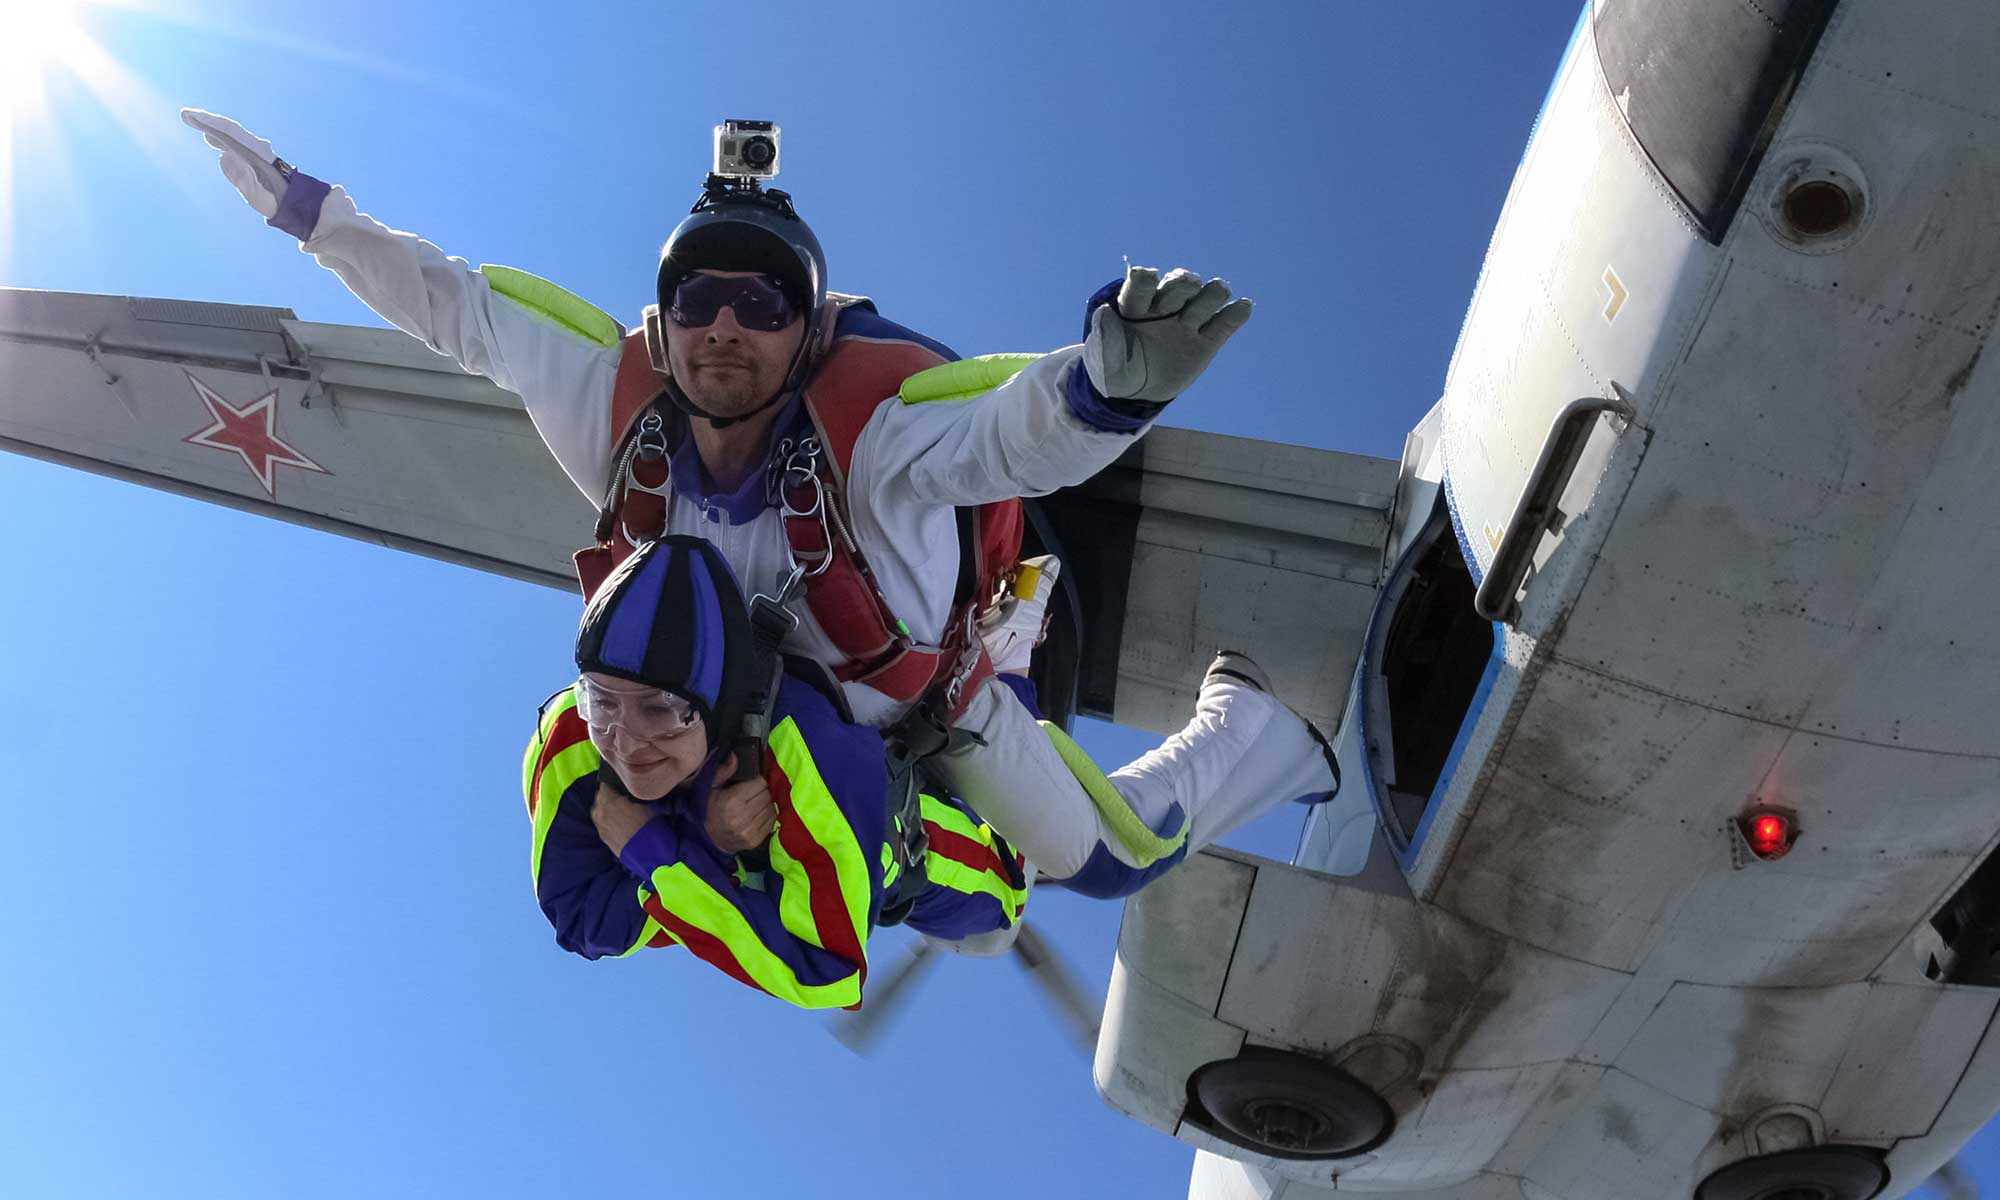 First Tandem Skydive 9000ft